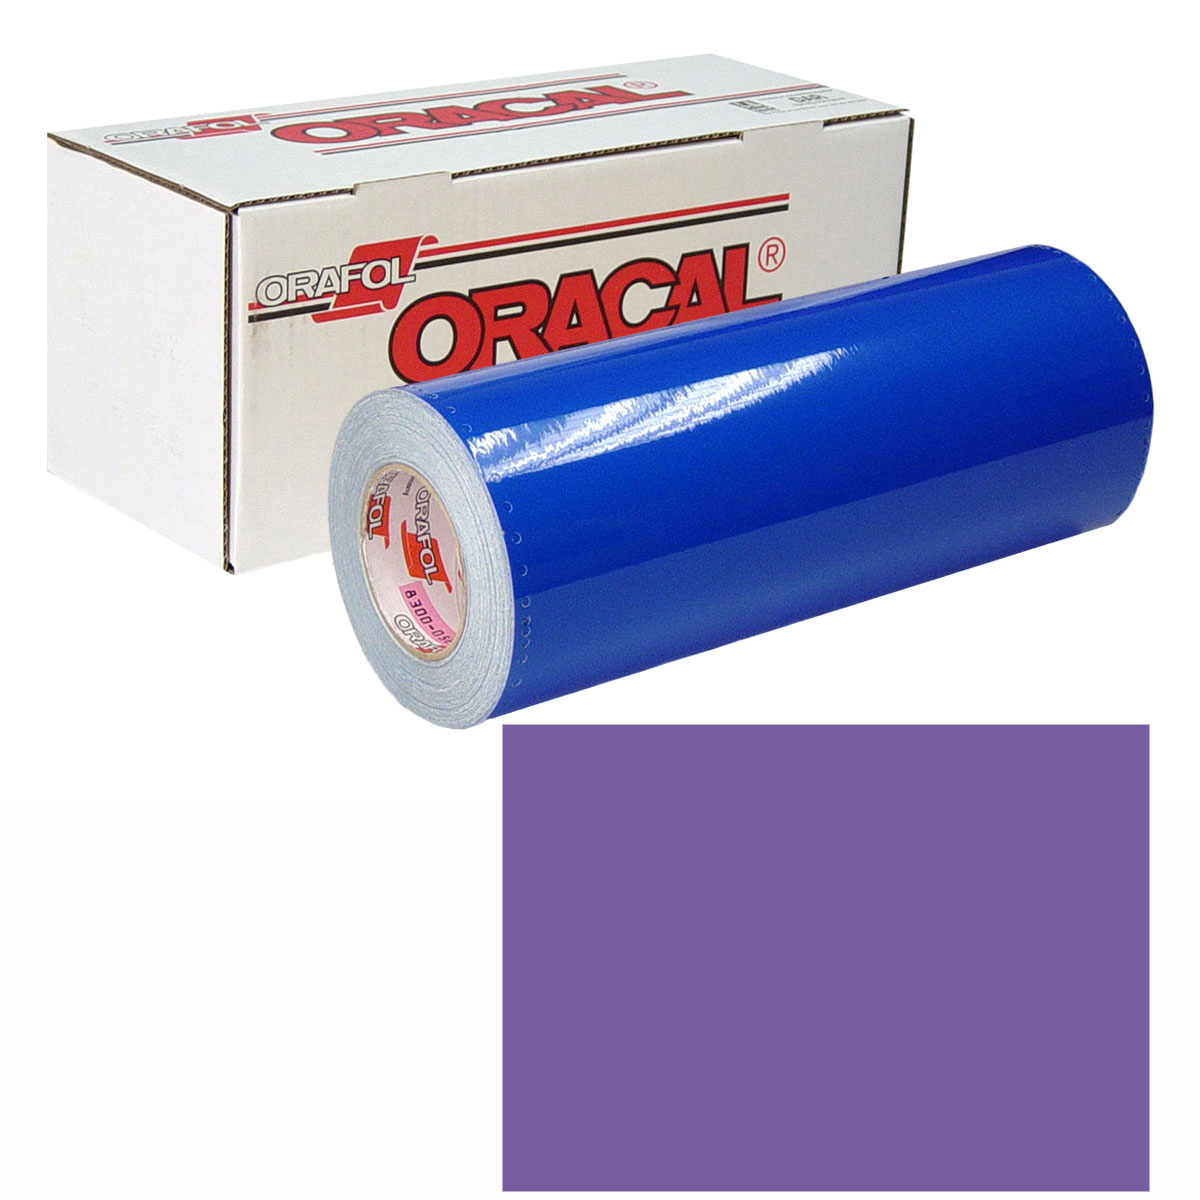 ORACAL 631 Unp 48in X 50yd 043 Lavender